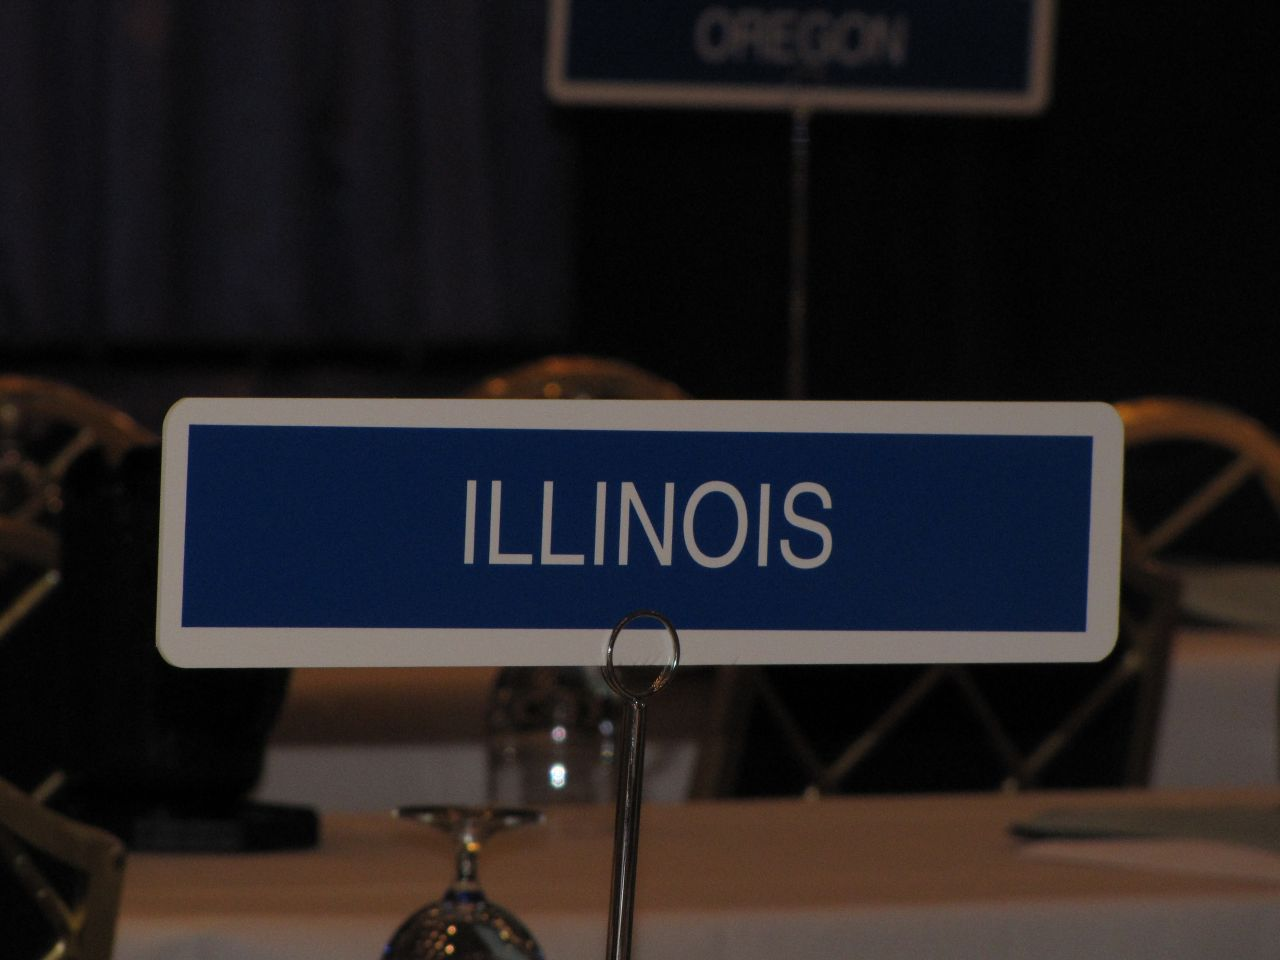 The Illinois delegation had a prominent spot front and center